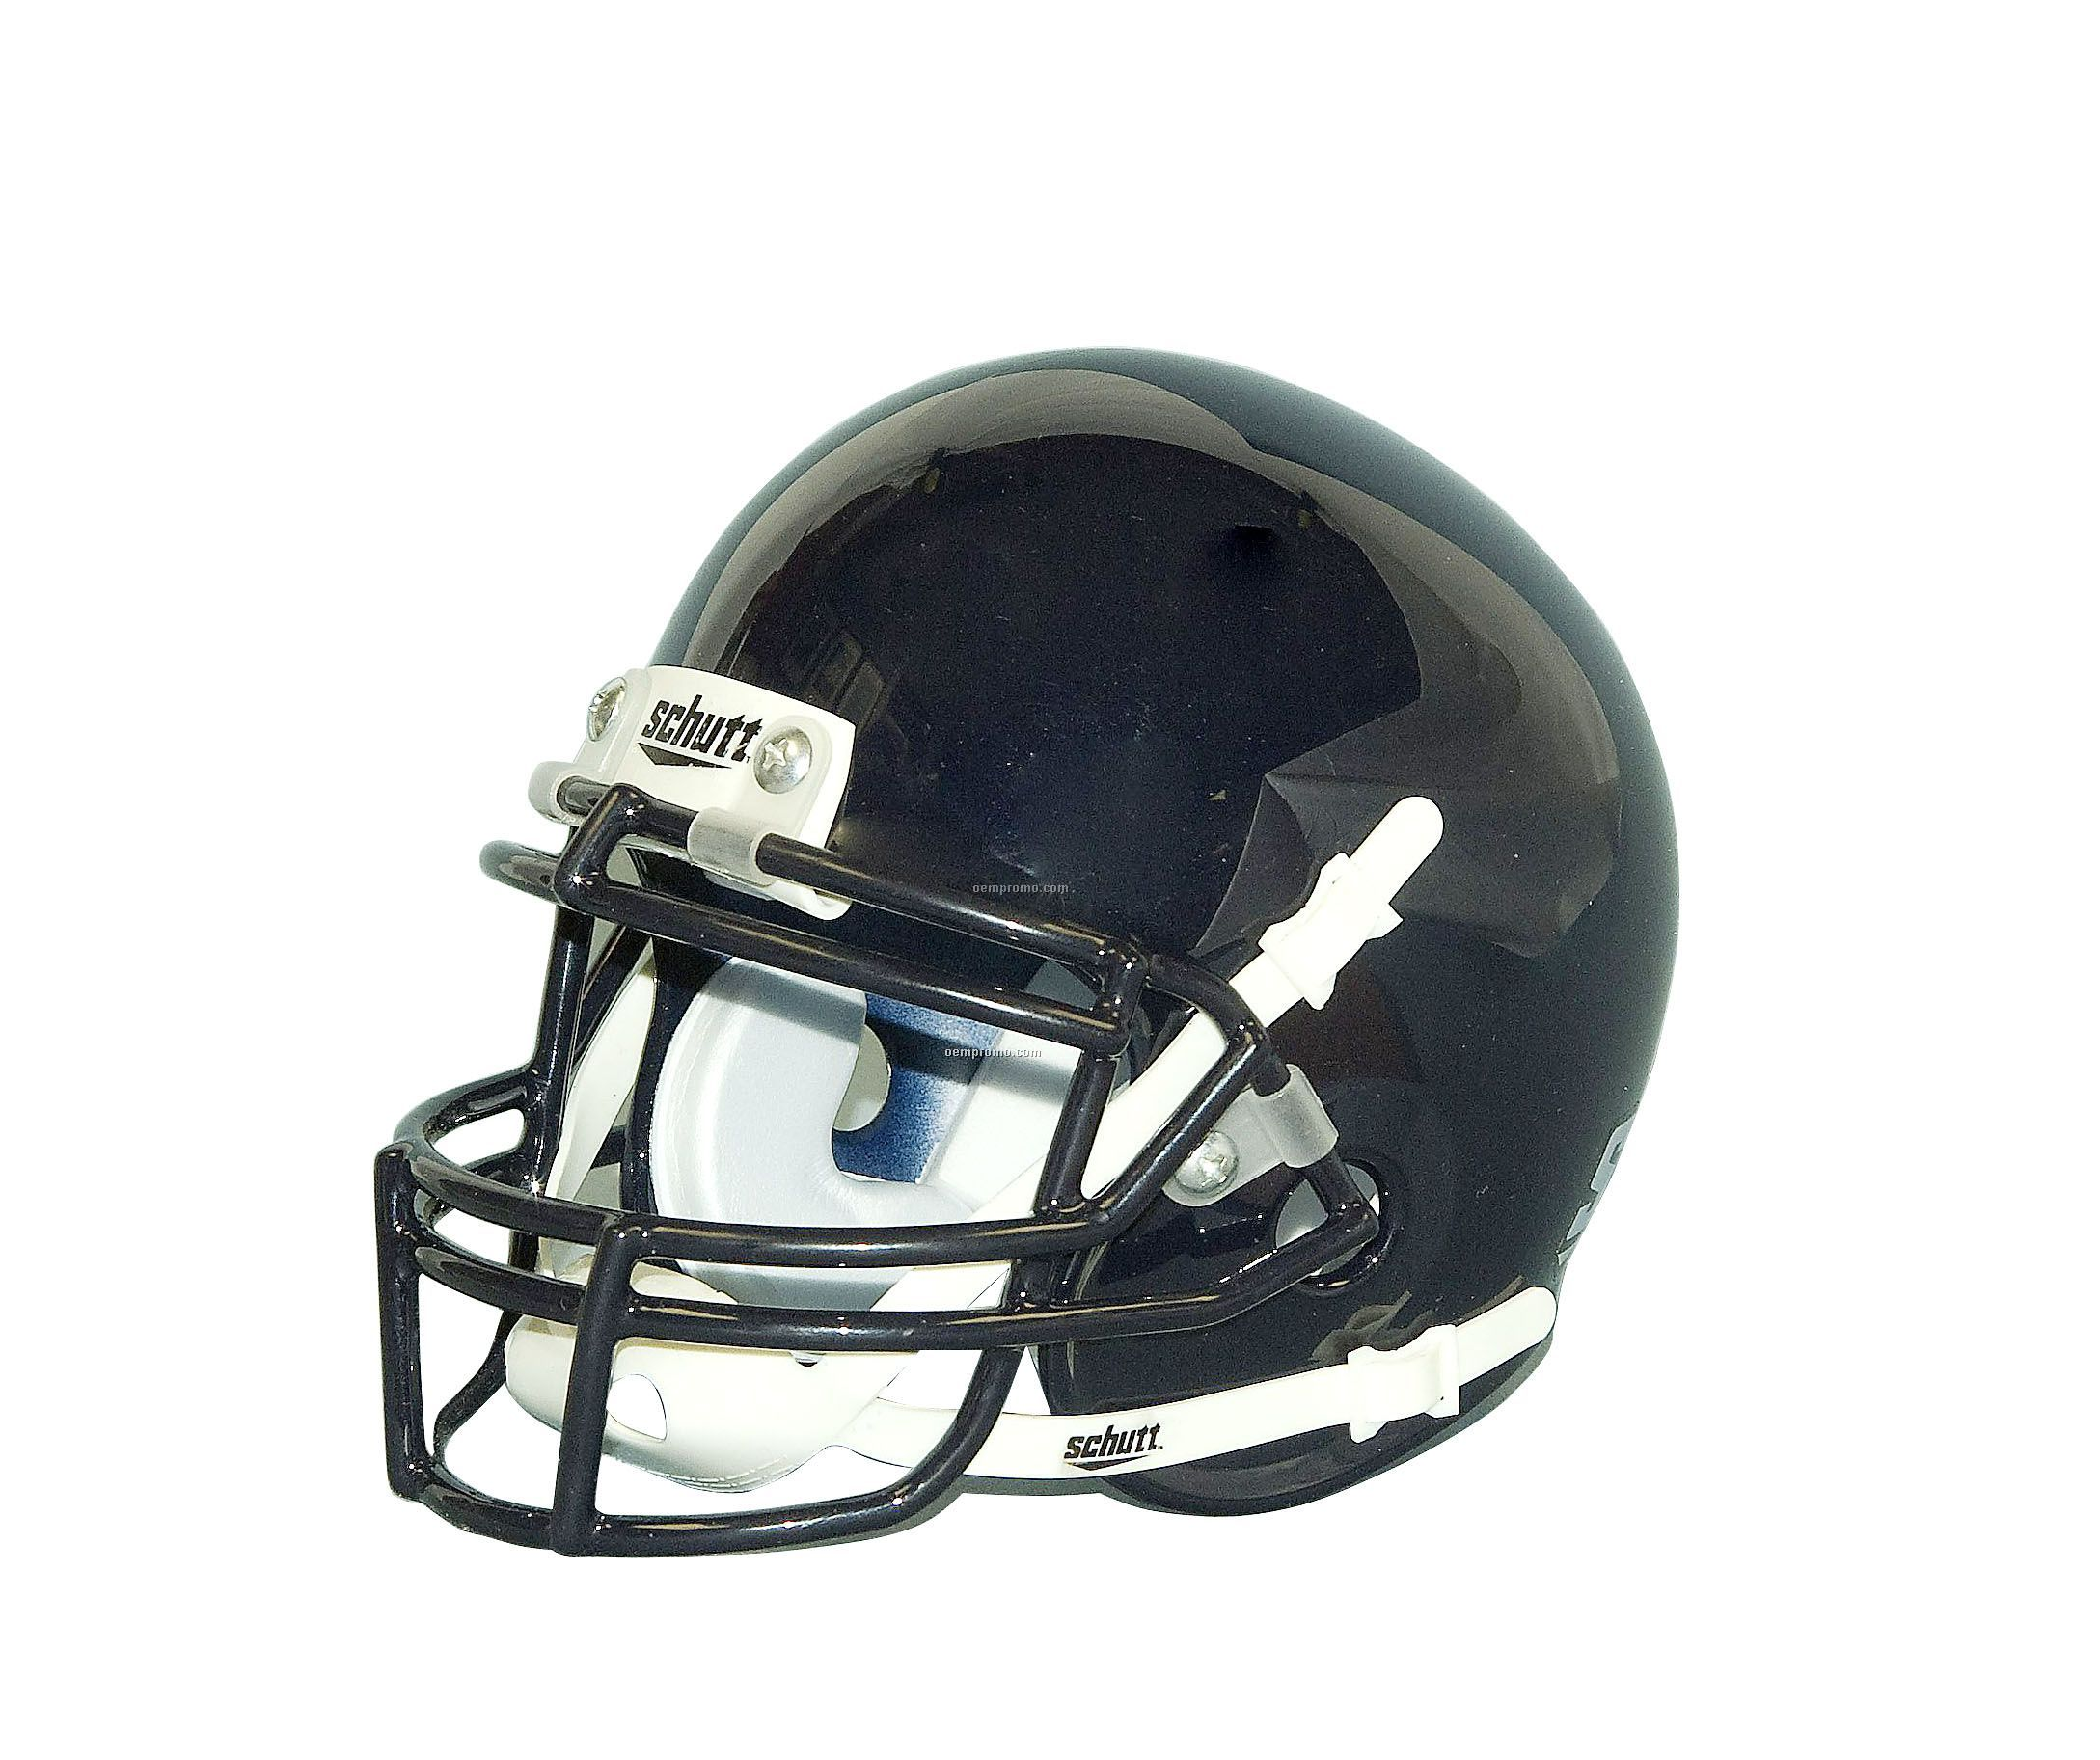 Blank Mini Football Helmet W/Faceguard